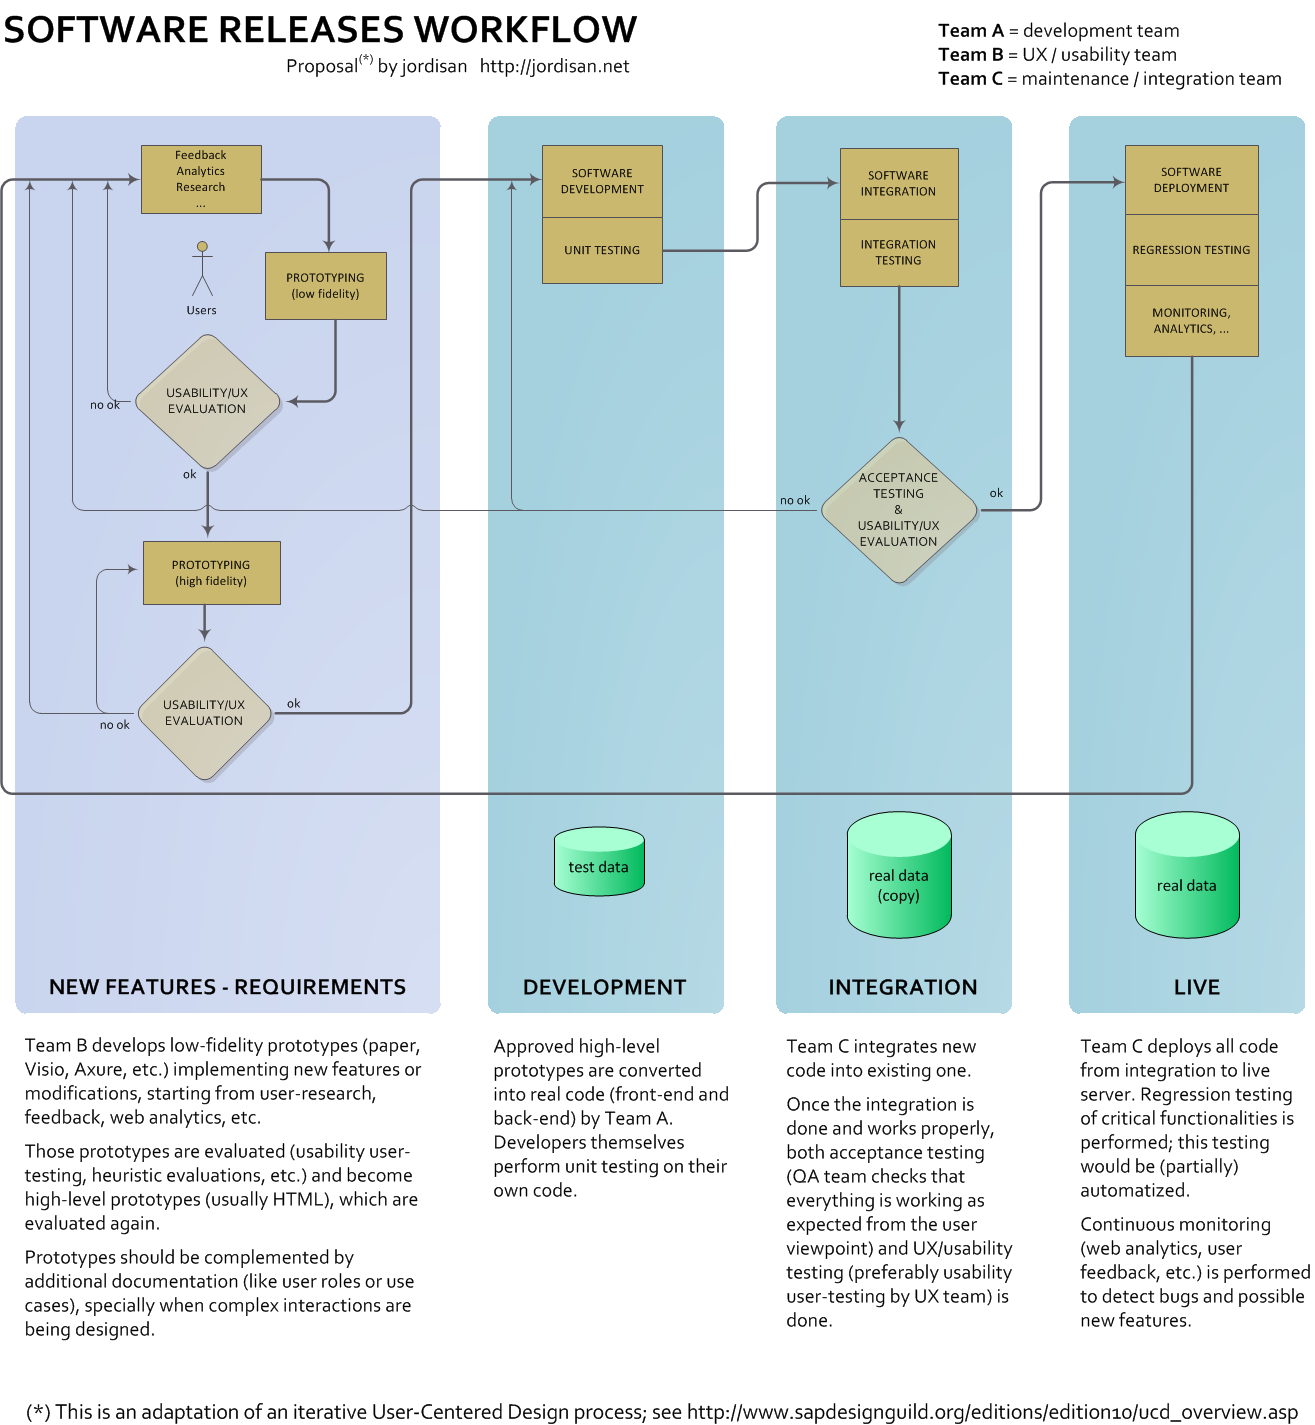 An approach to an integrated software-releases workflow